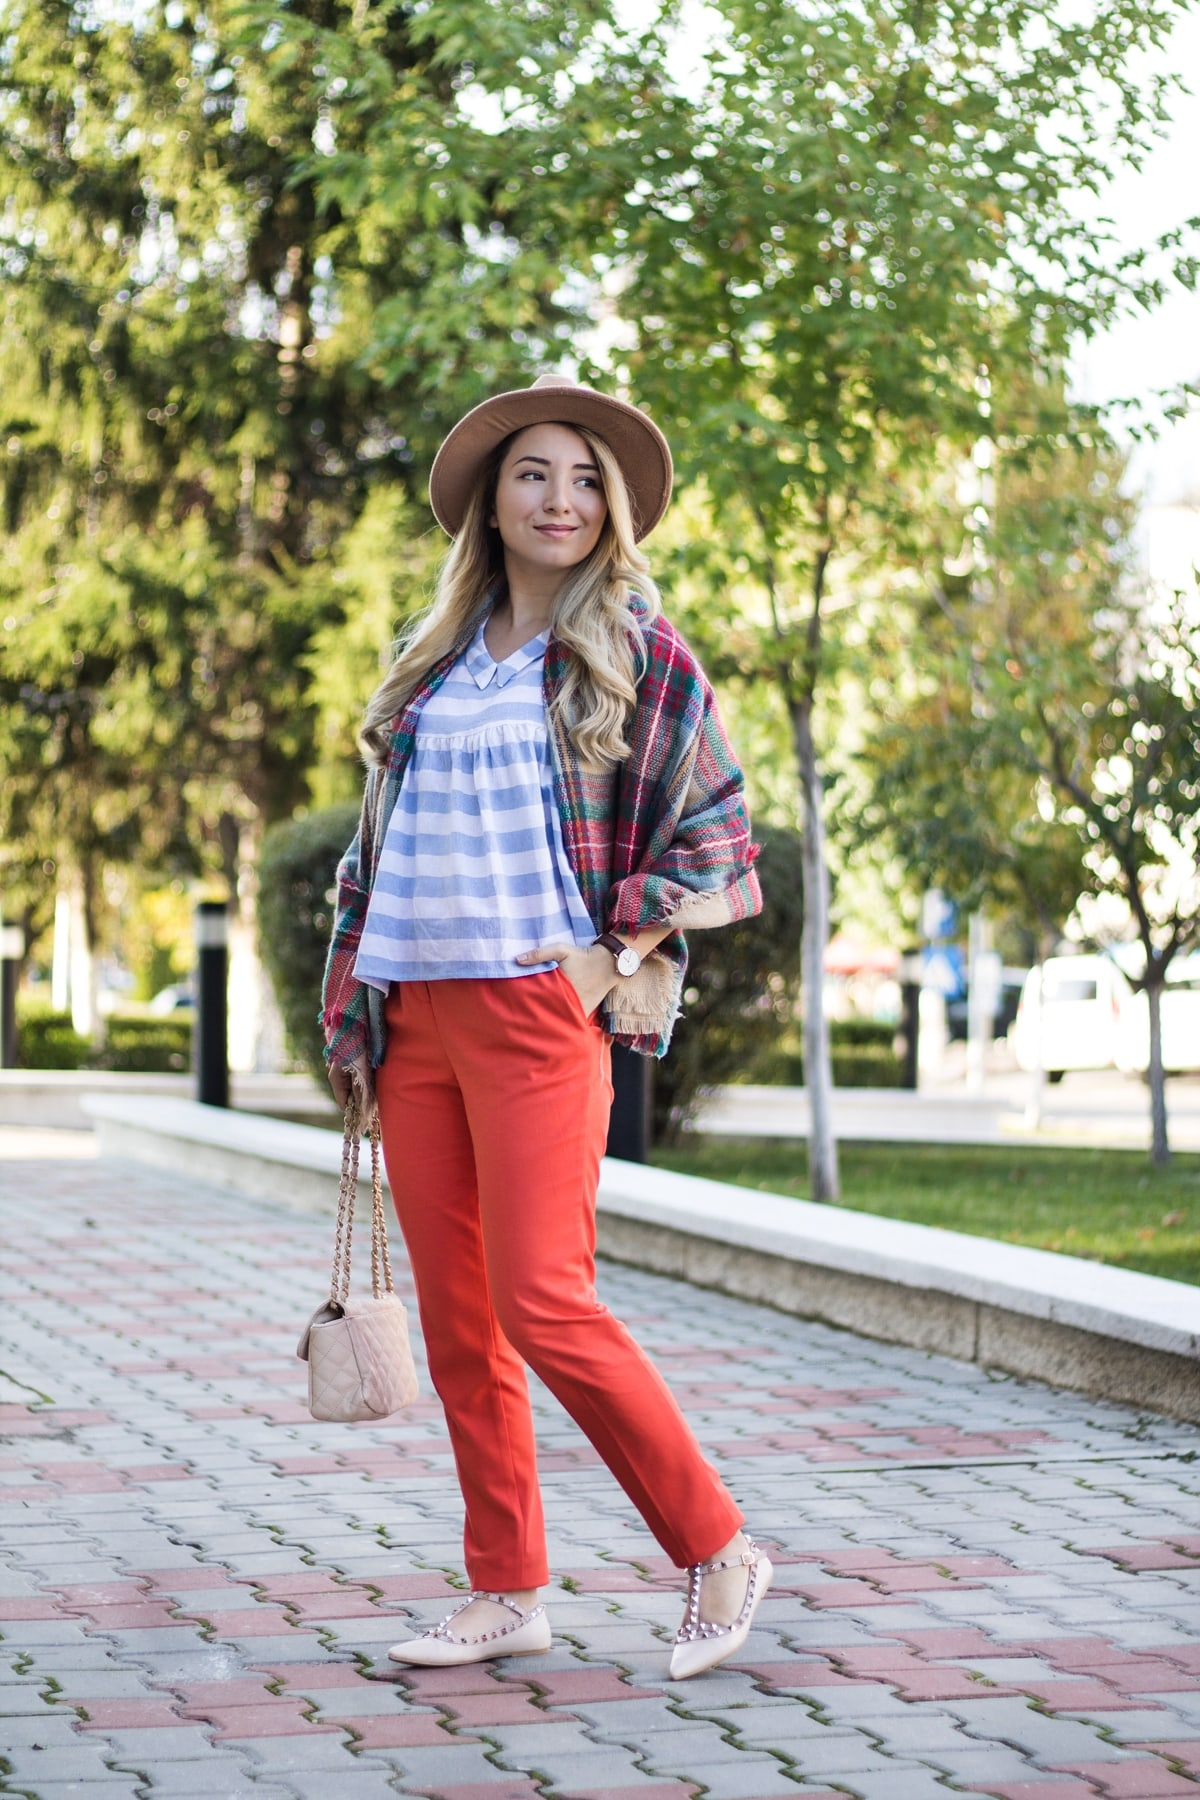 Street style: orange pants, babydoll blouse, white and blue stripes, camel hat, valentino inspired flats, autumn look, by andreea ristea